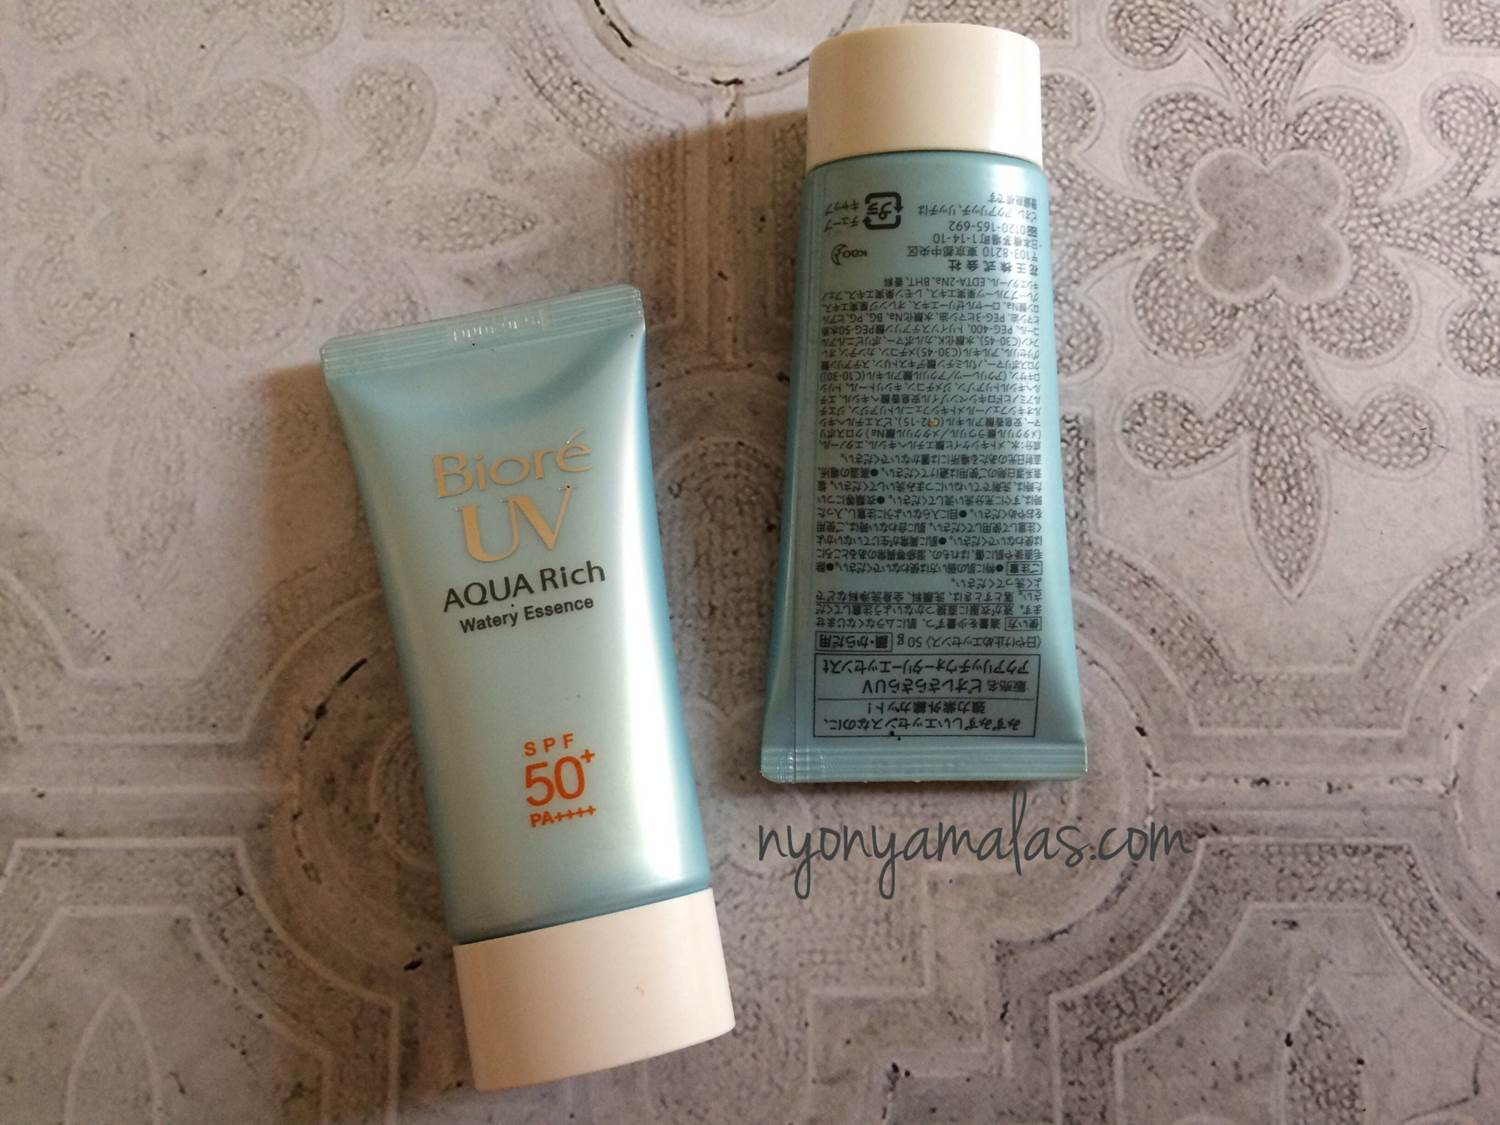 review biore uv watery essence spf 50 foto produk